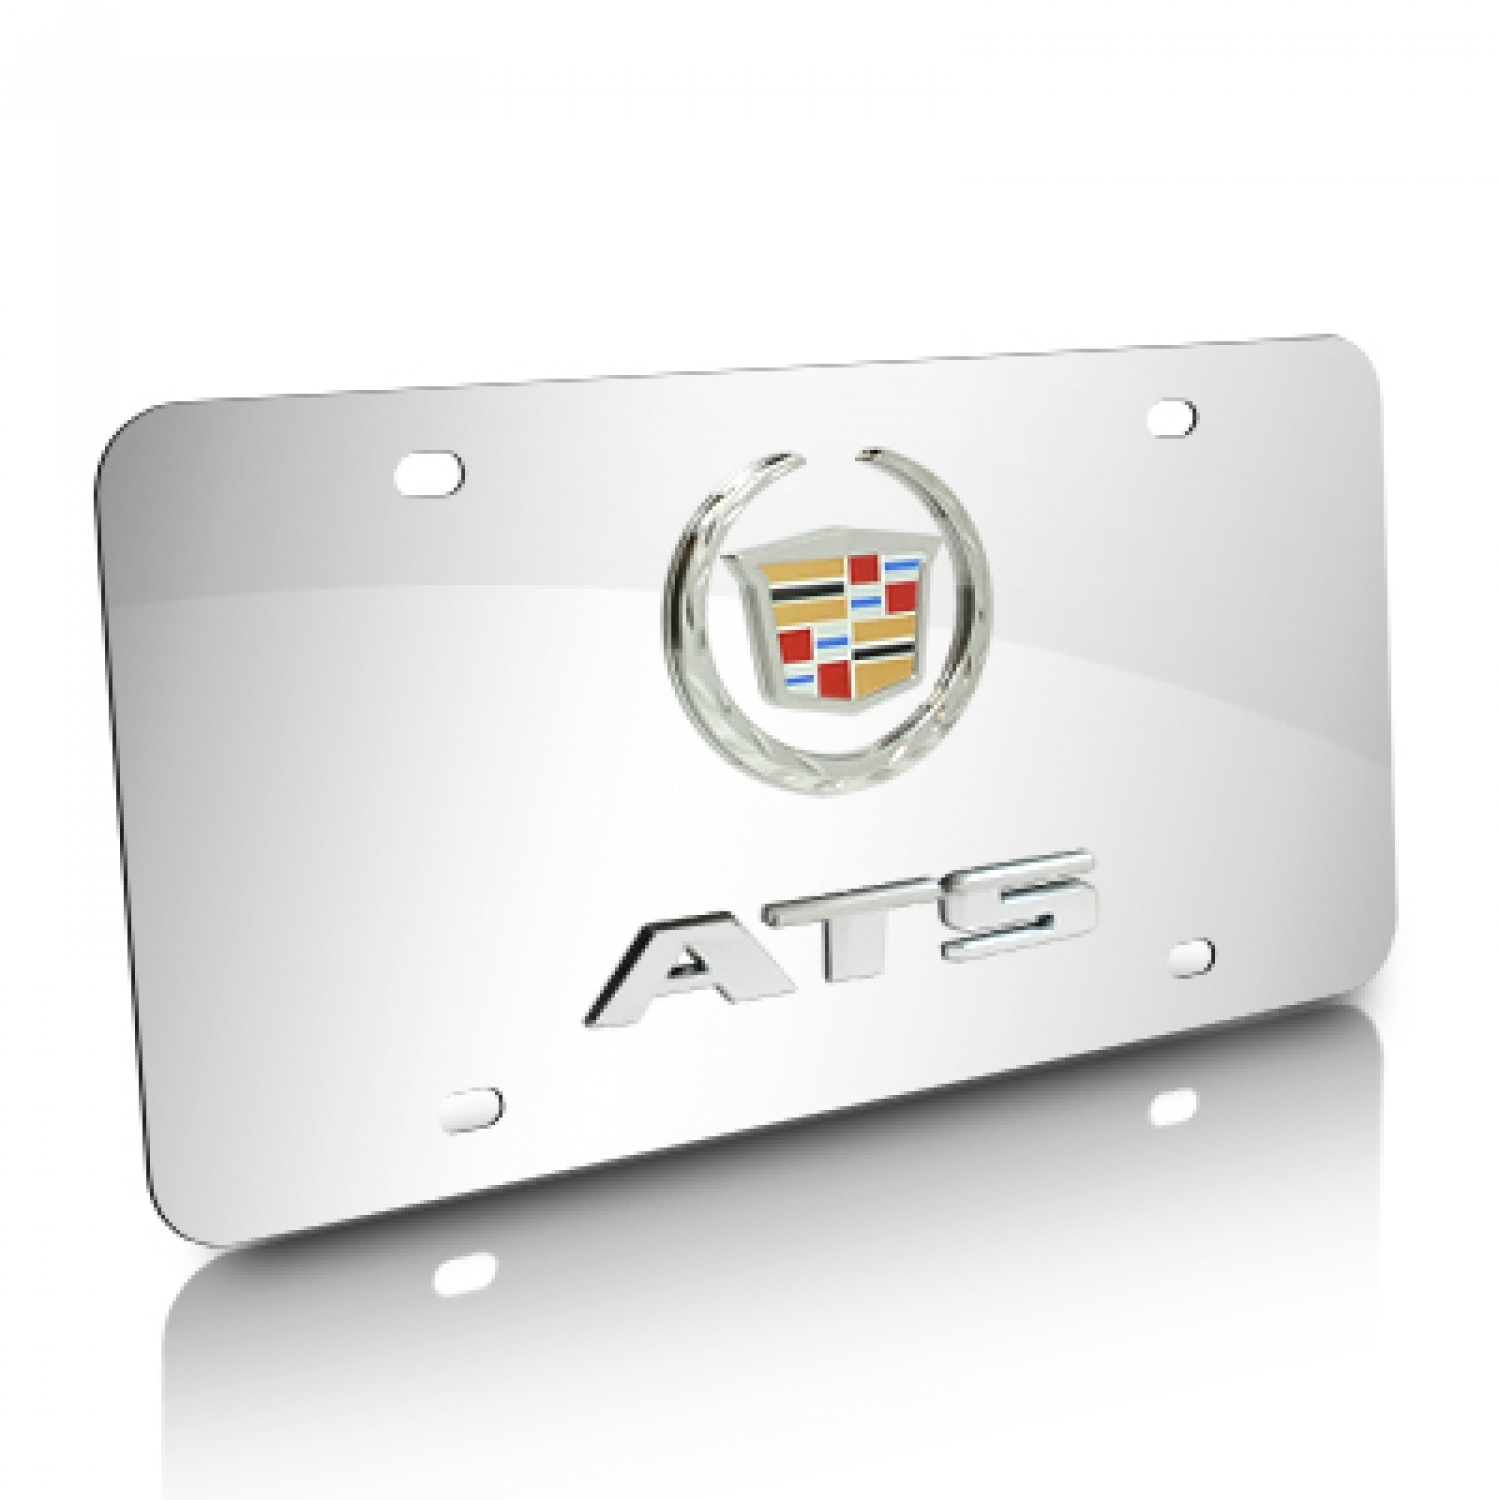 Cadillac ATS Double 3D Logo Chrome Stainless Steel License Plate